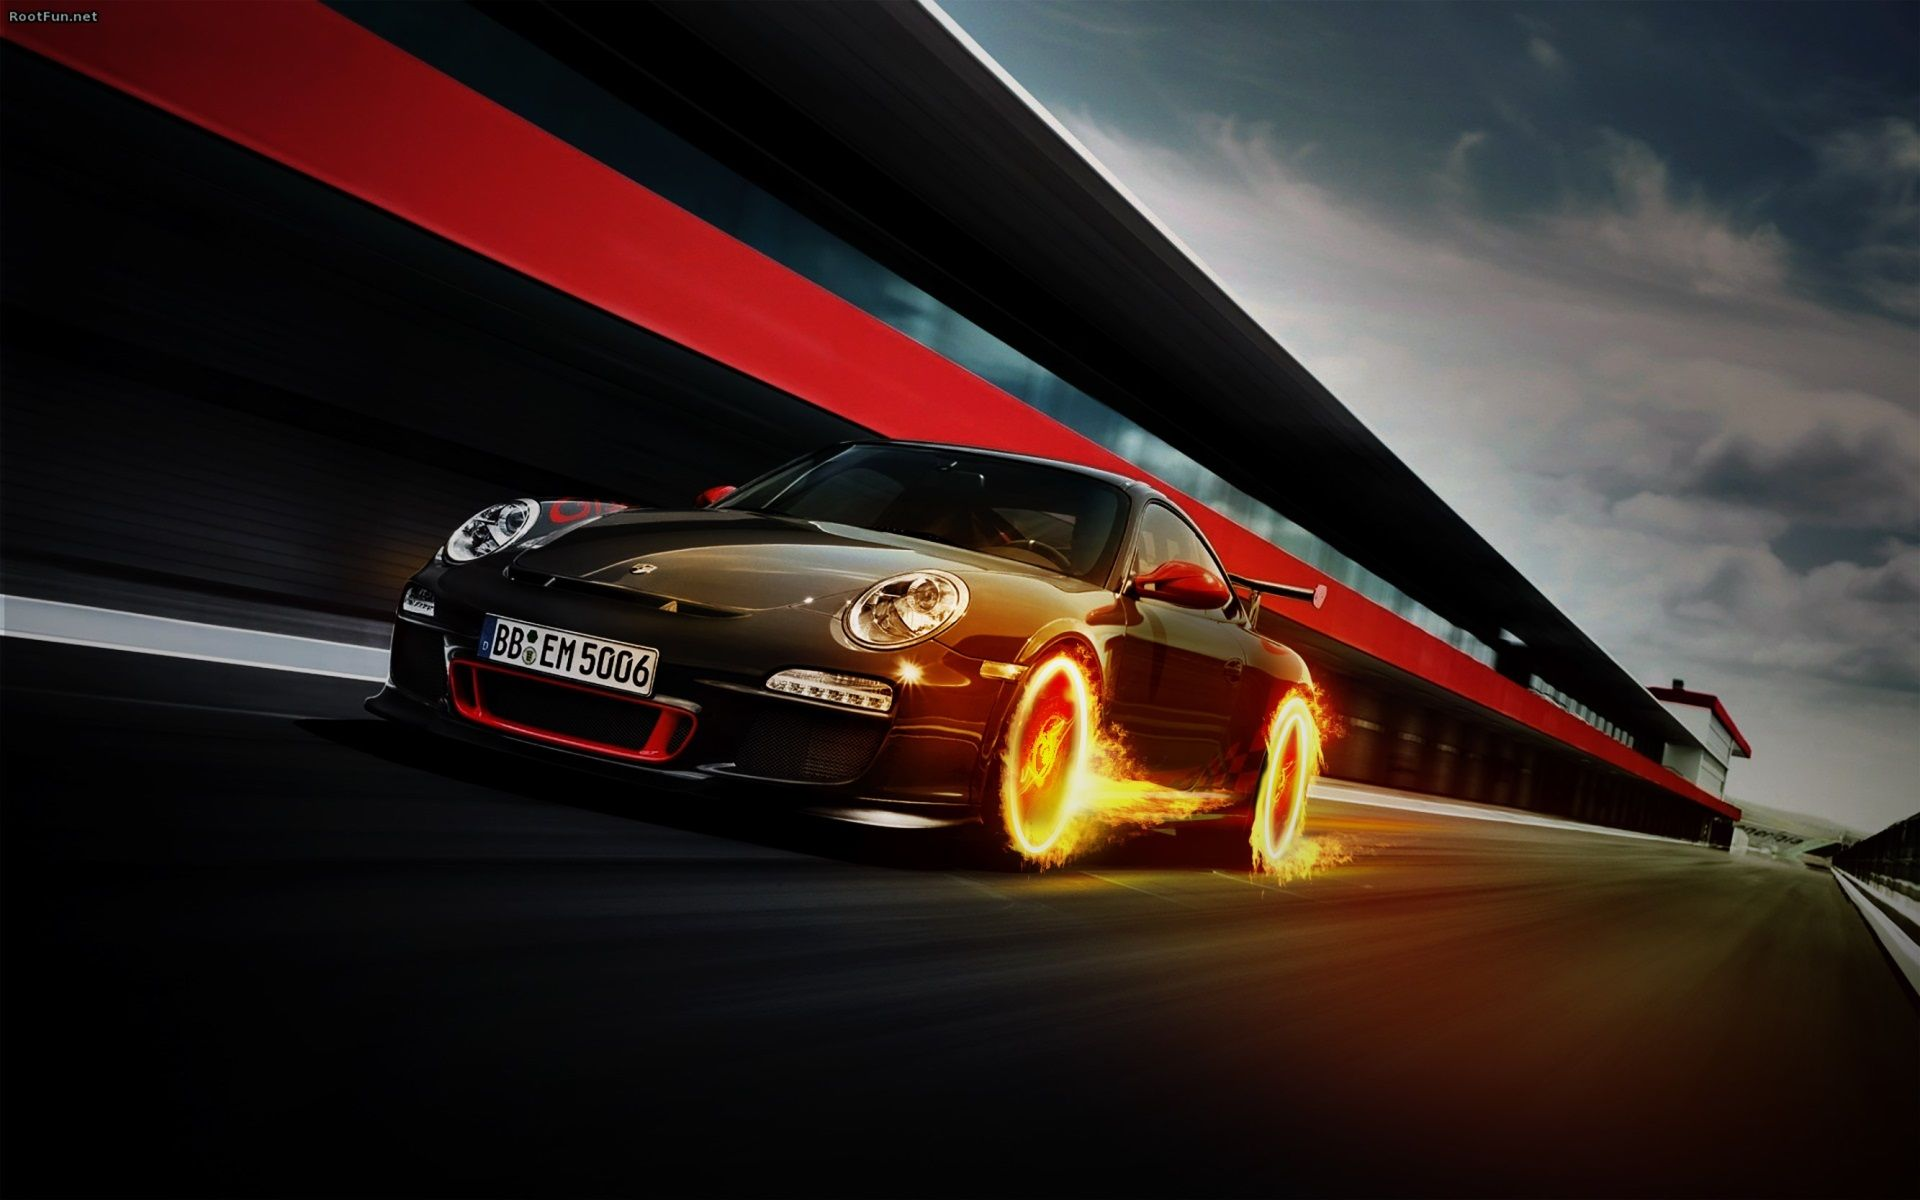 1920x1200 Porsche High Quality Wallpaper For Desktop Porsche 911 Gt3 Porsche Supercars Wallpaper